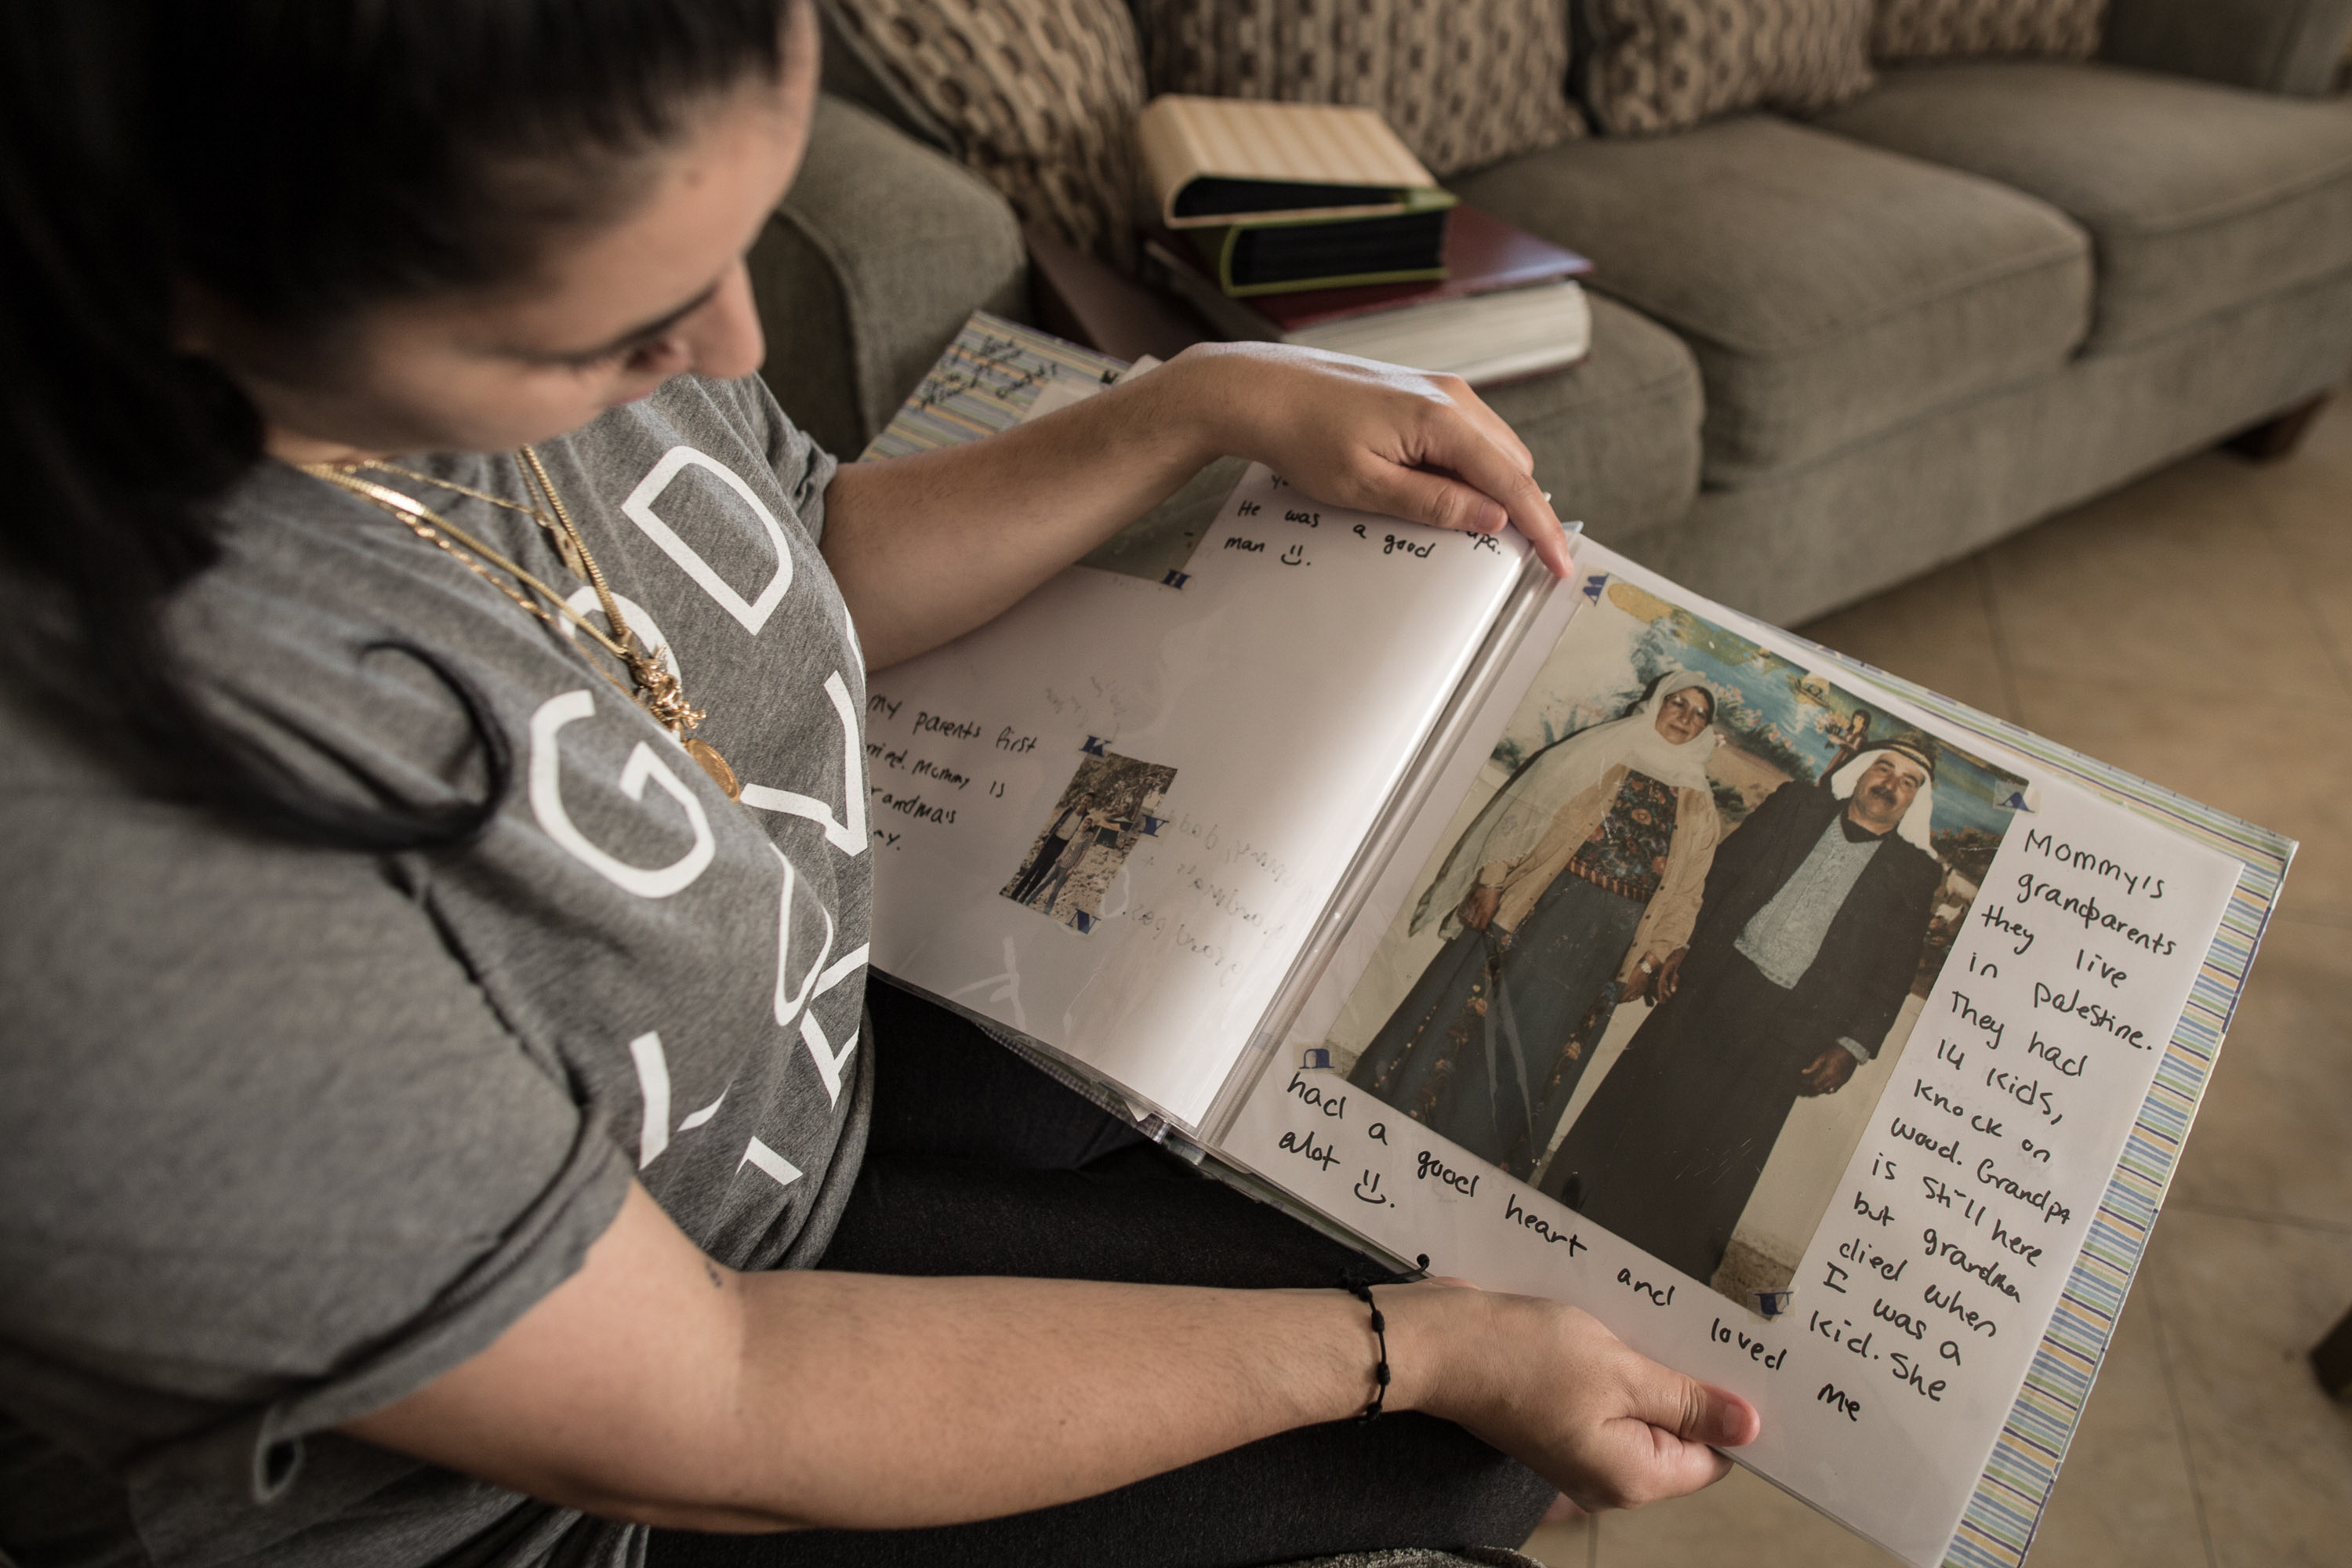 Noor Salman holds a photo album with a picture of her grandparents in Palestine.